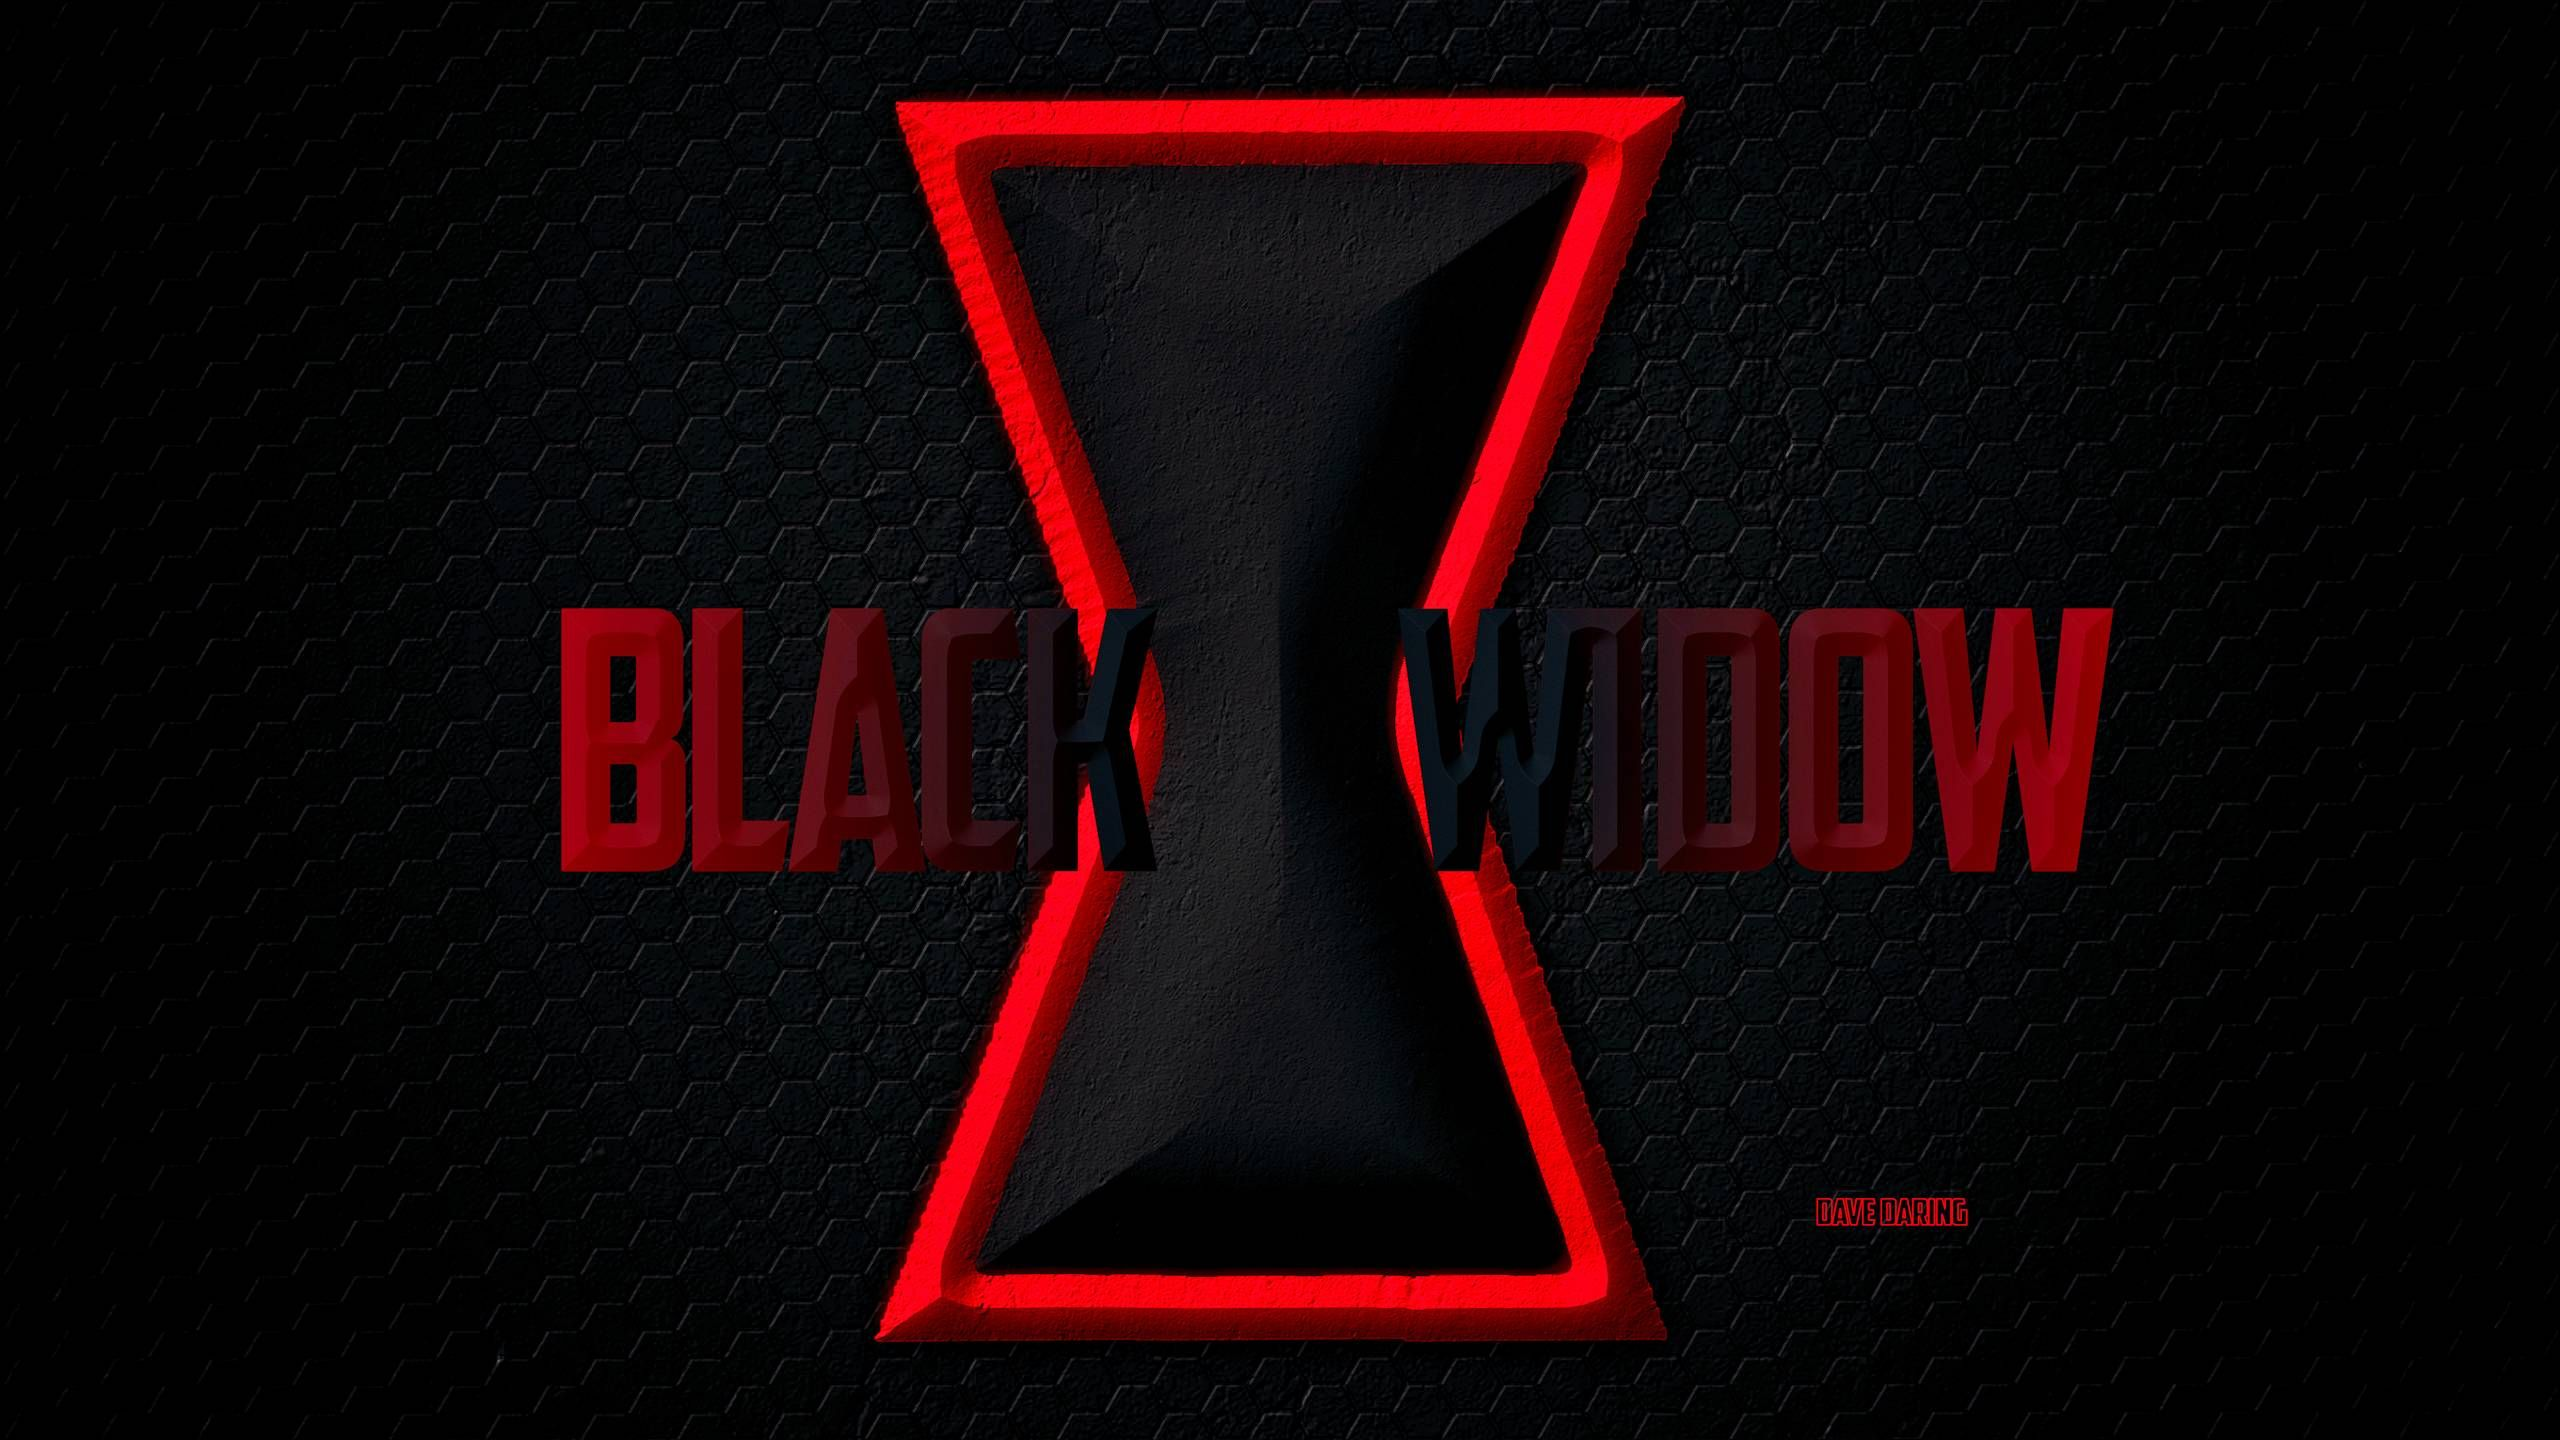 Marvel Black Widow Logo Black Widow Symbol By Dave Black